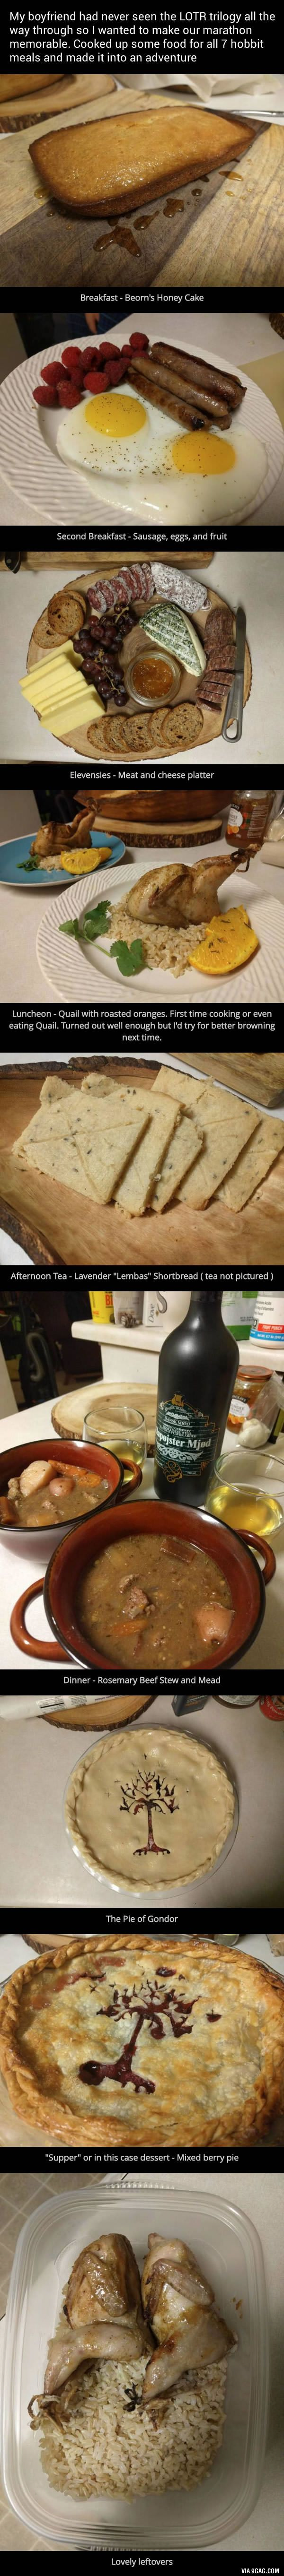 This girl cooked 7 hobbit meals for his boyfriend for their LOTR trilogy marathon - 9GAG